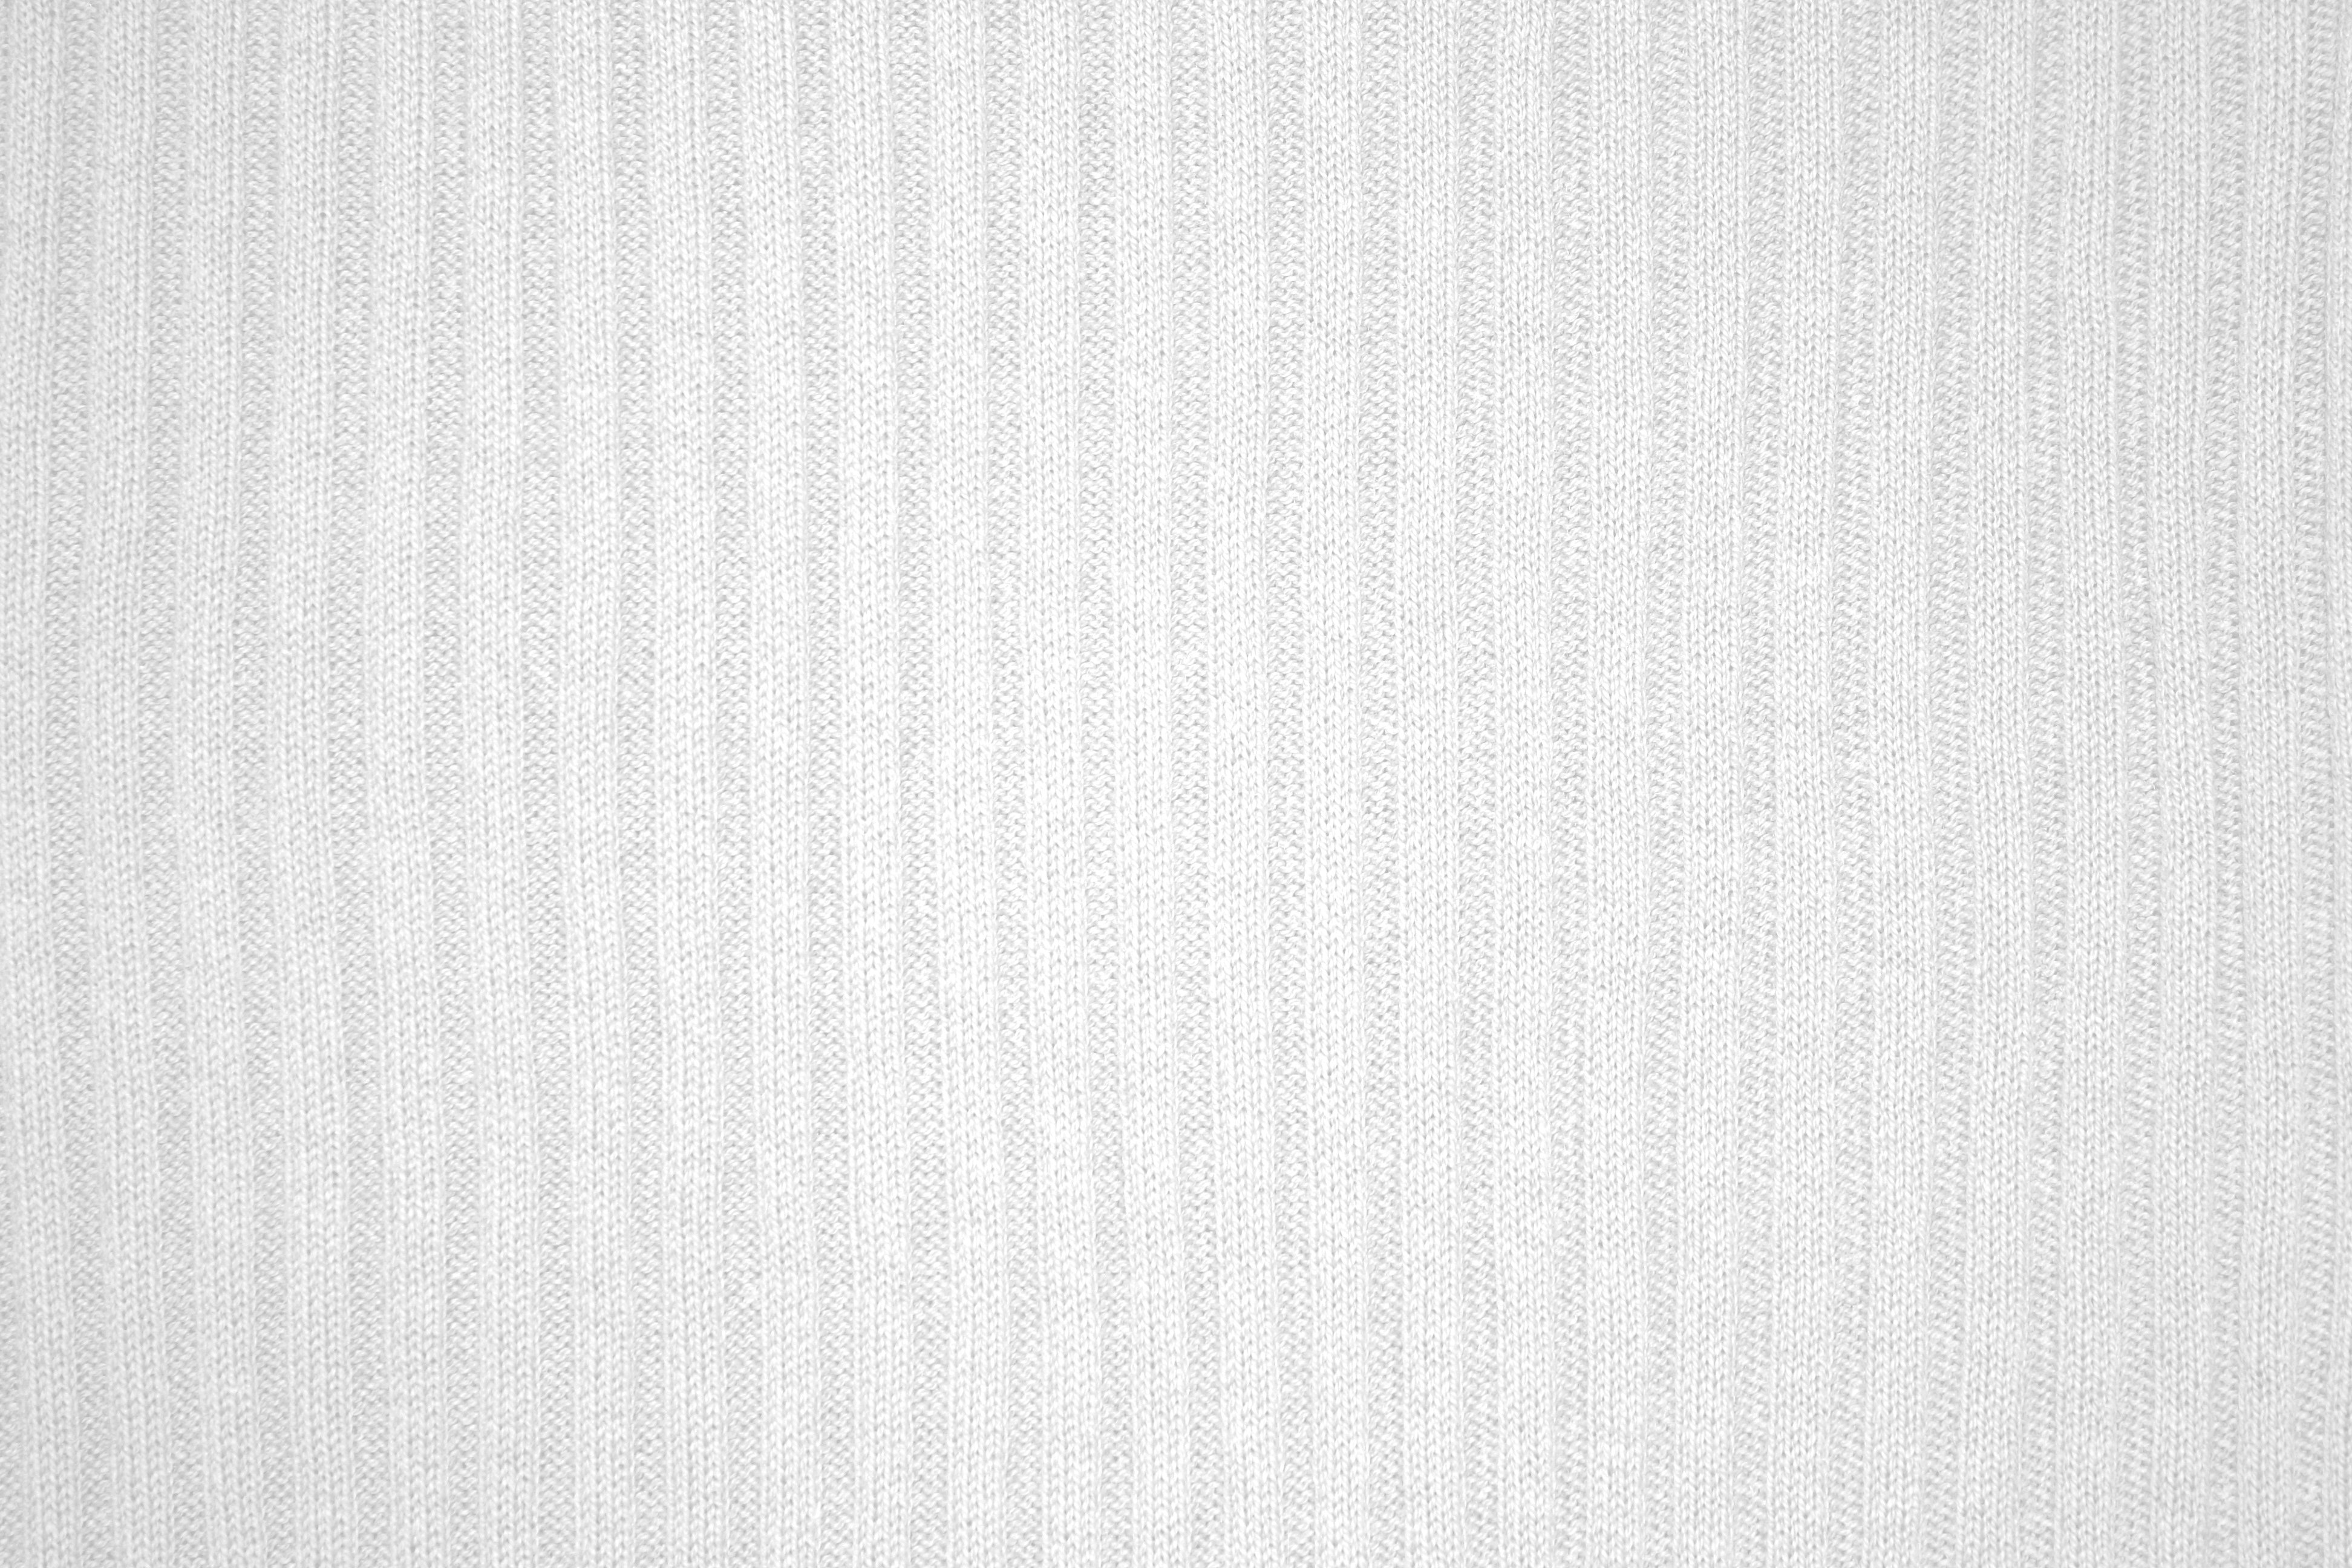 White Ribbed Knit Fabric Texture